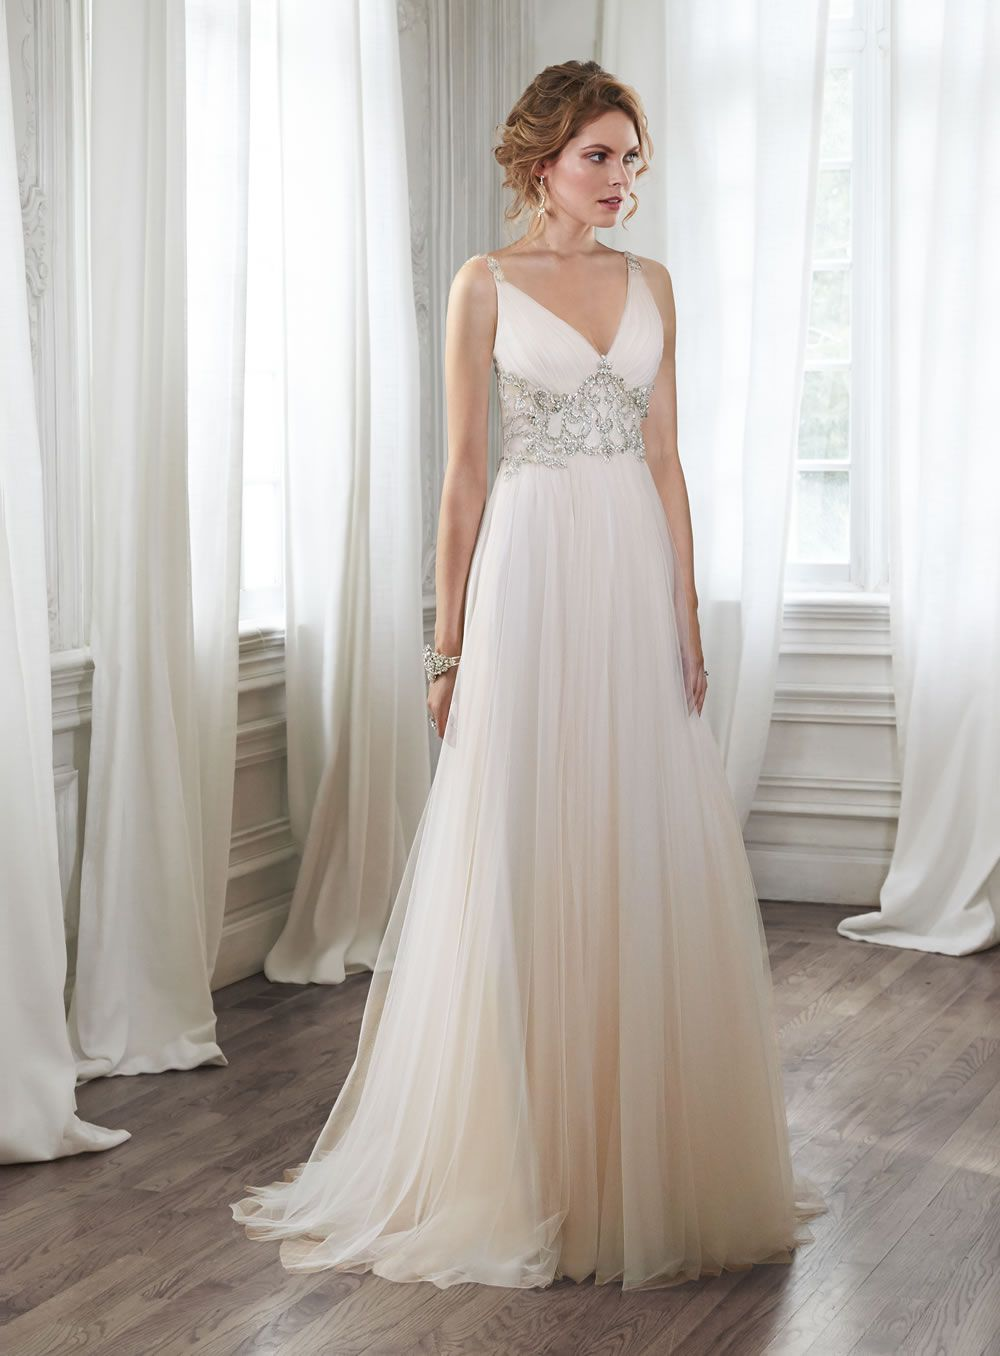 maggie-sottero-spring-2015-maggiesottero.com 5MR054_Phyllis Alt1